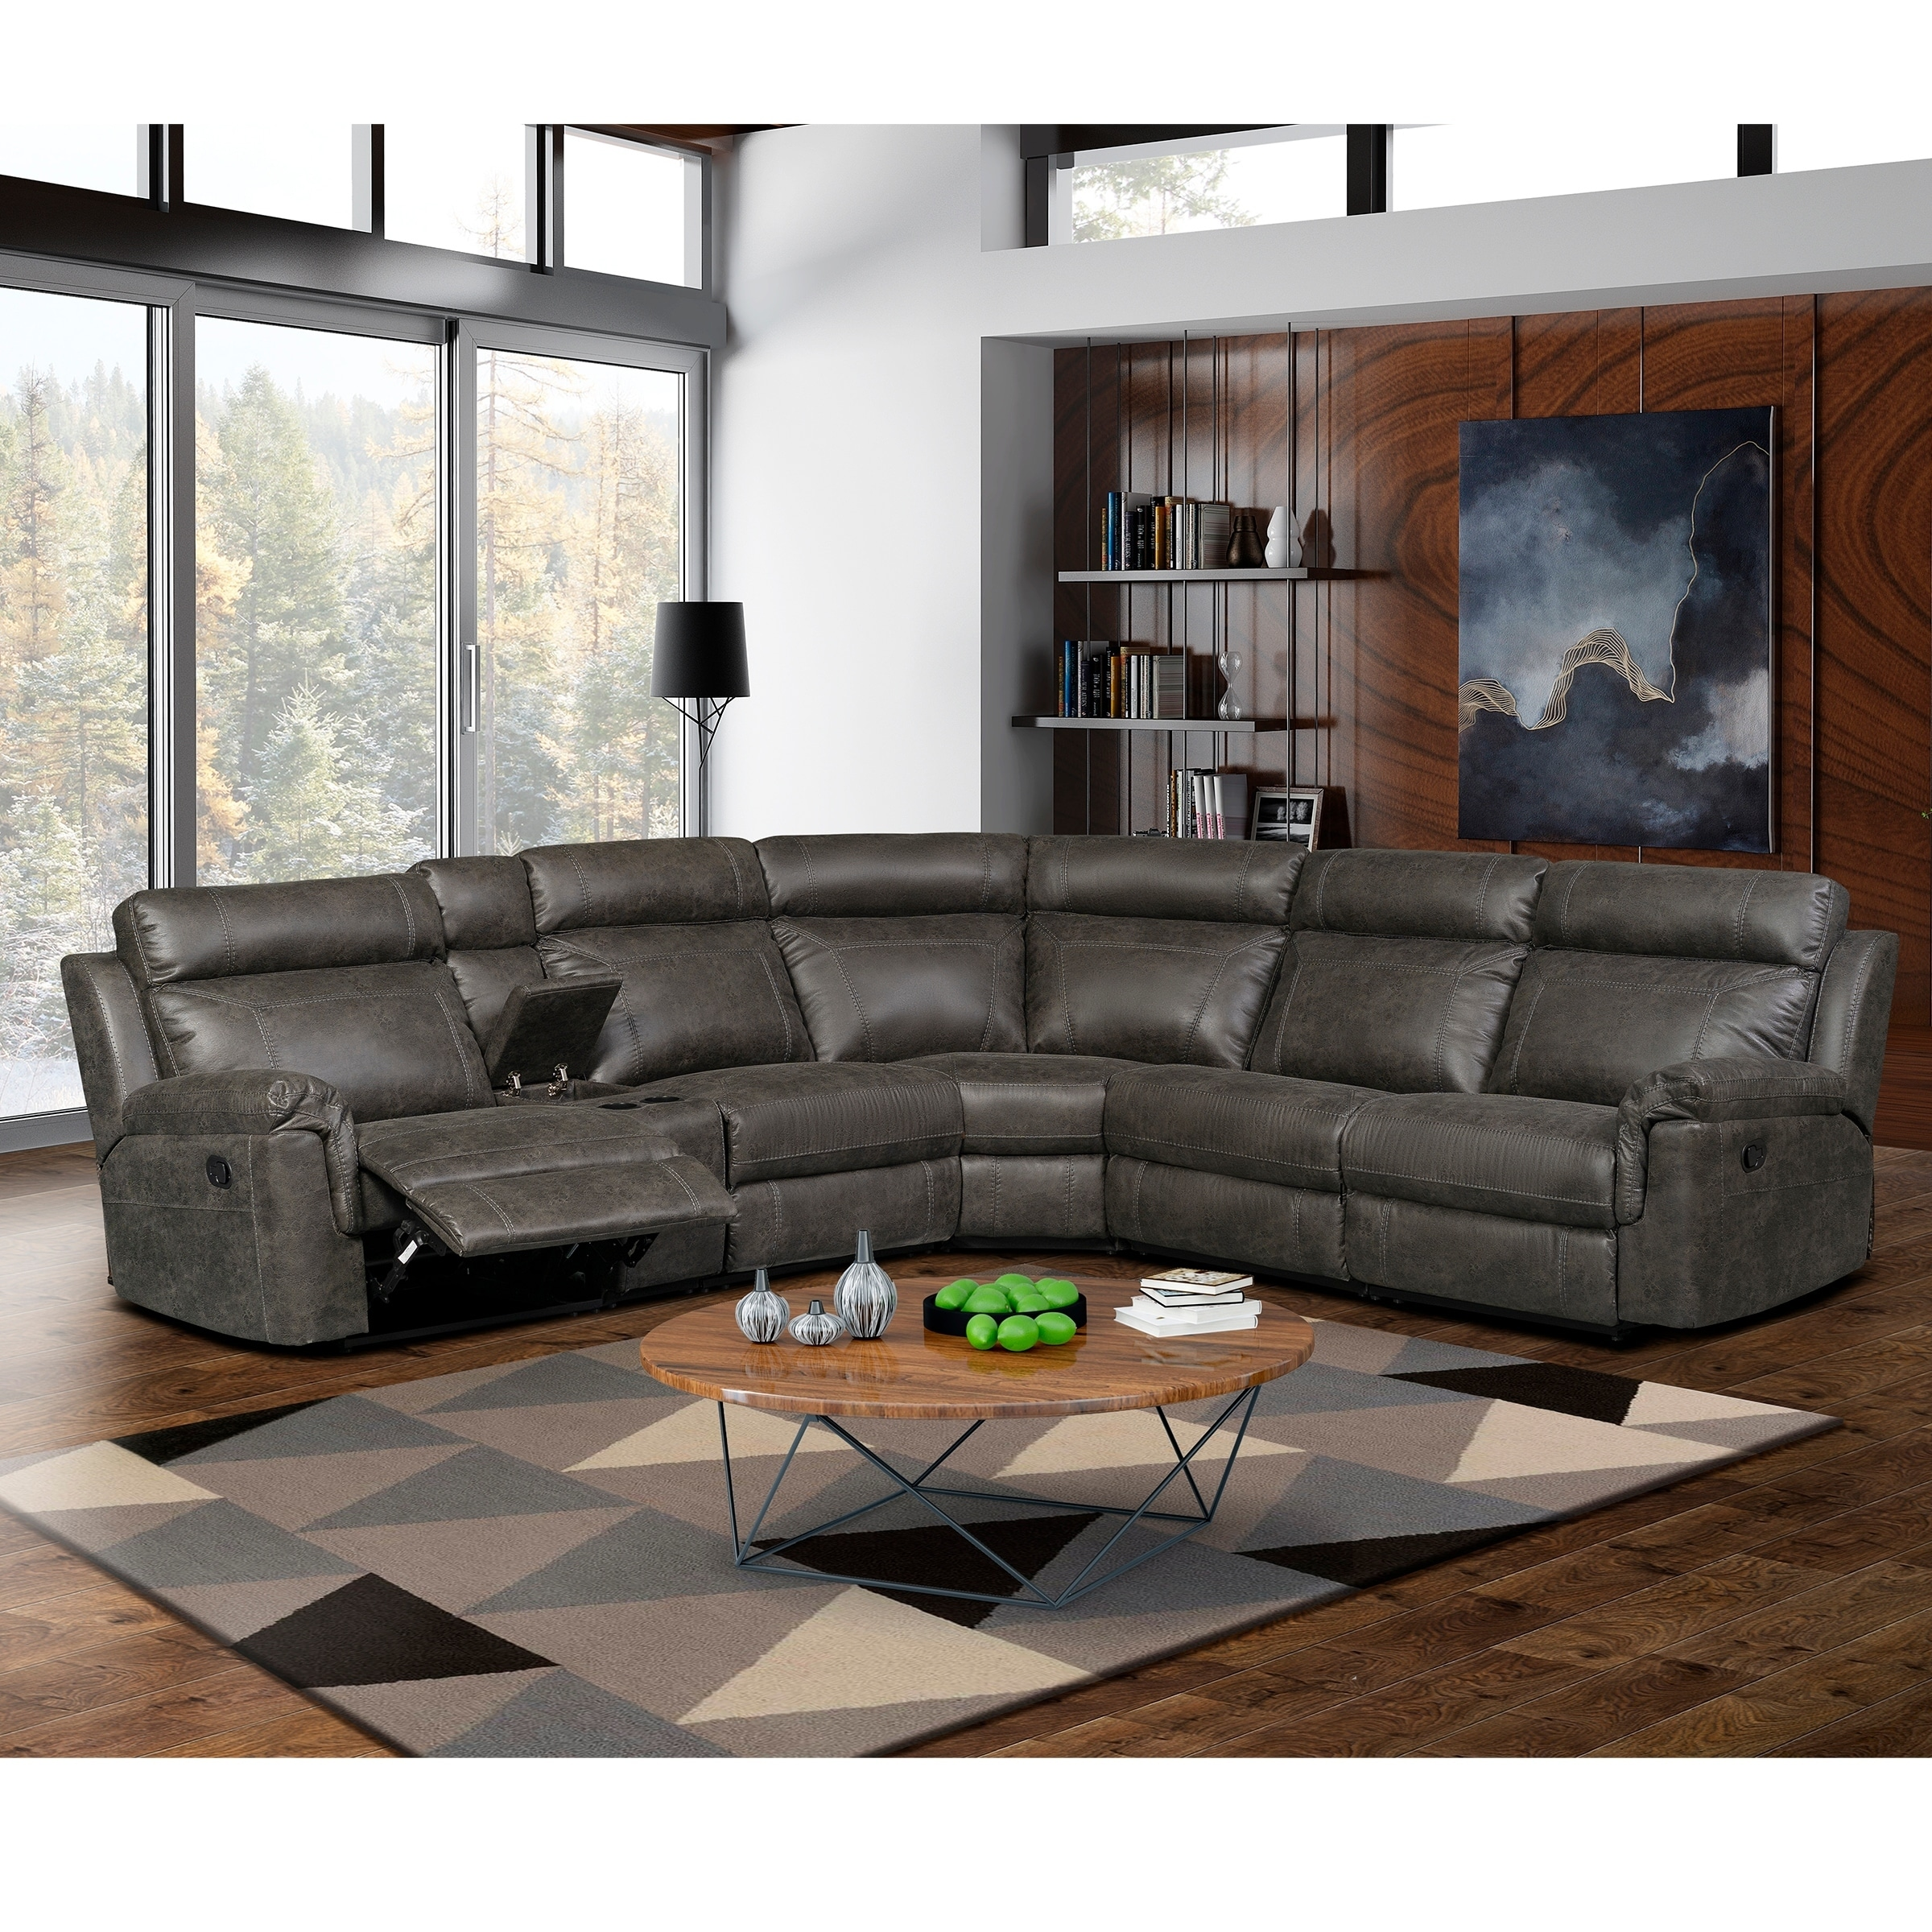 buy brown sectional sofas online at overstock our best living room rh overstock com brown leather sectional living room ideas brown leather sectional living room ideas